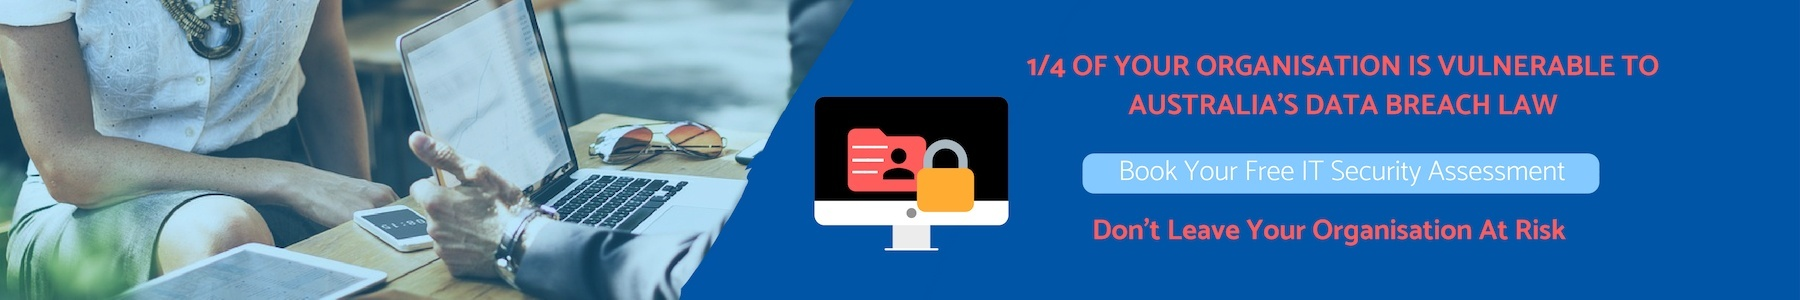 Free IT Security Assessment